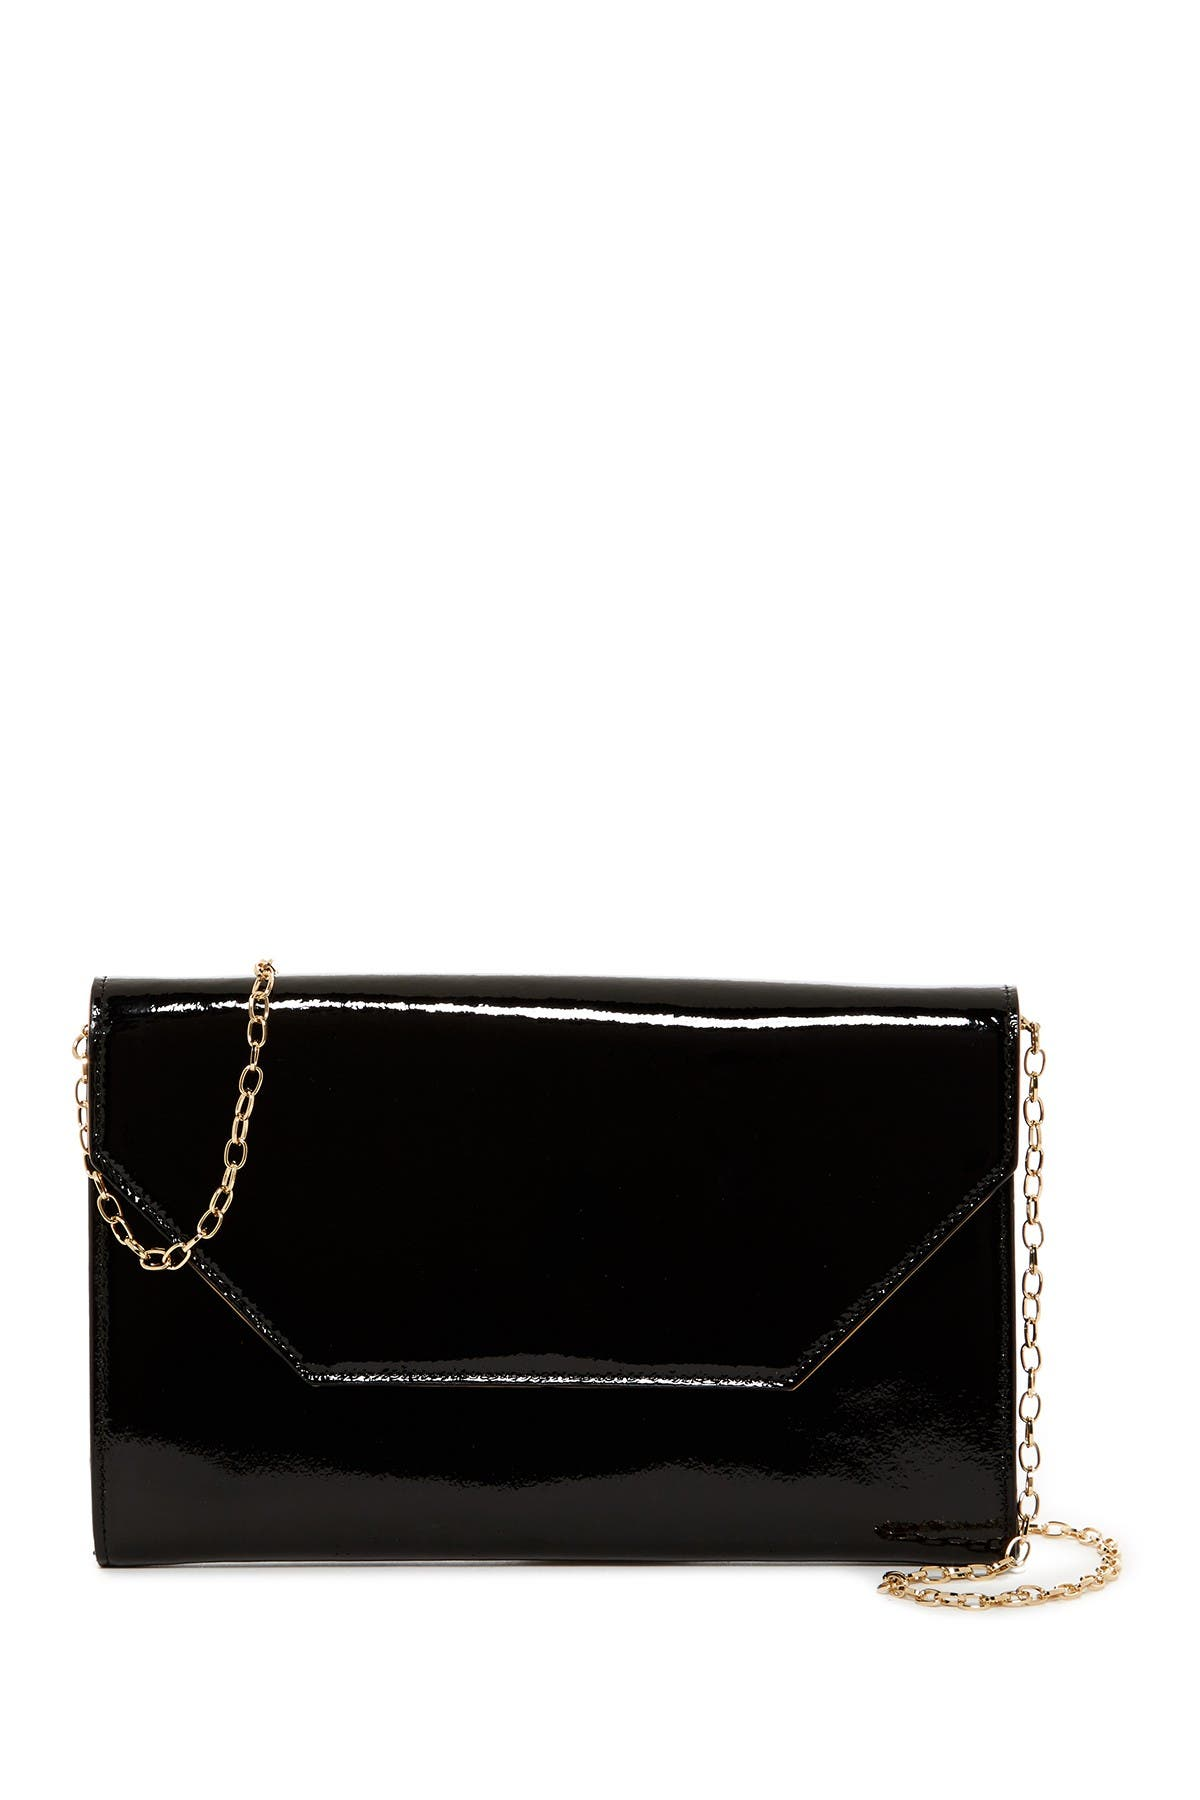 Image of Halogen Patent Leather Clutch